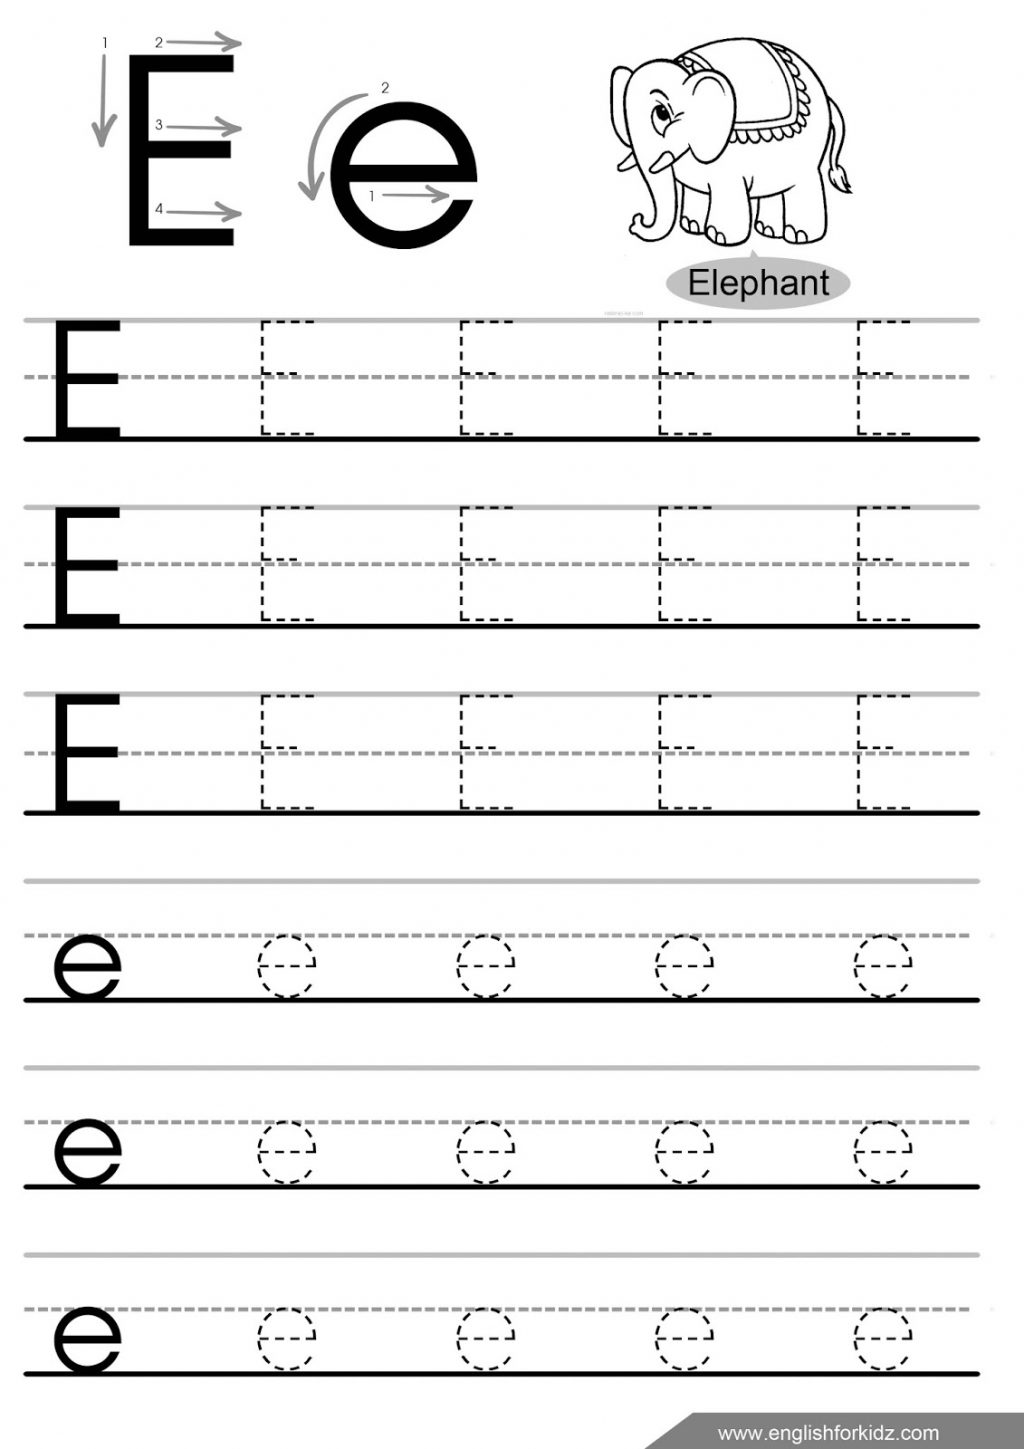 coloring letter e worksheets for toddlers writing az alphabet exercises game for kids writing letter e letter worksheets for coloring toddlers